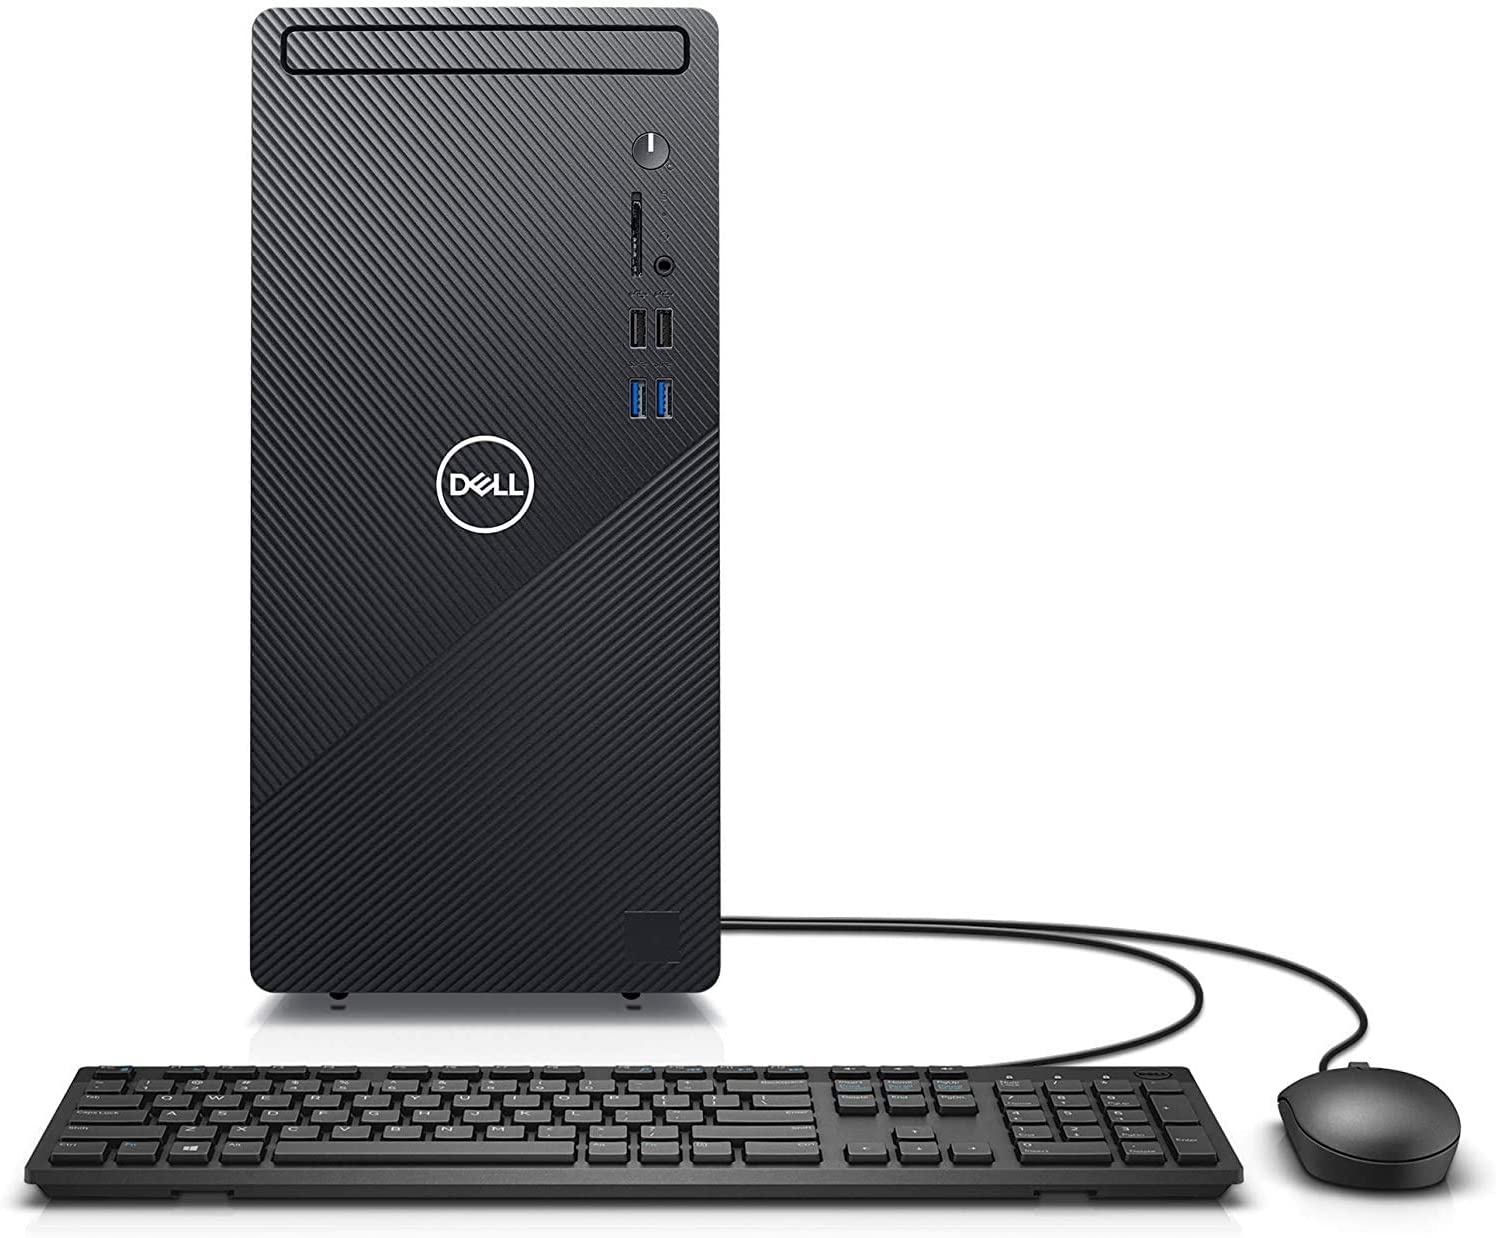 2021 Newest Dell Inspiron High Performance Desktop, Intel Core i5-10400, 16GB DDR4 RAM, 512GB PCIe SSD + 1TB HDD, WiFi, HDMI, No-DVD, Wired Keyboard&Mouse, Windows 10